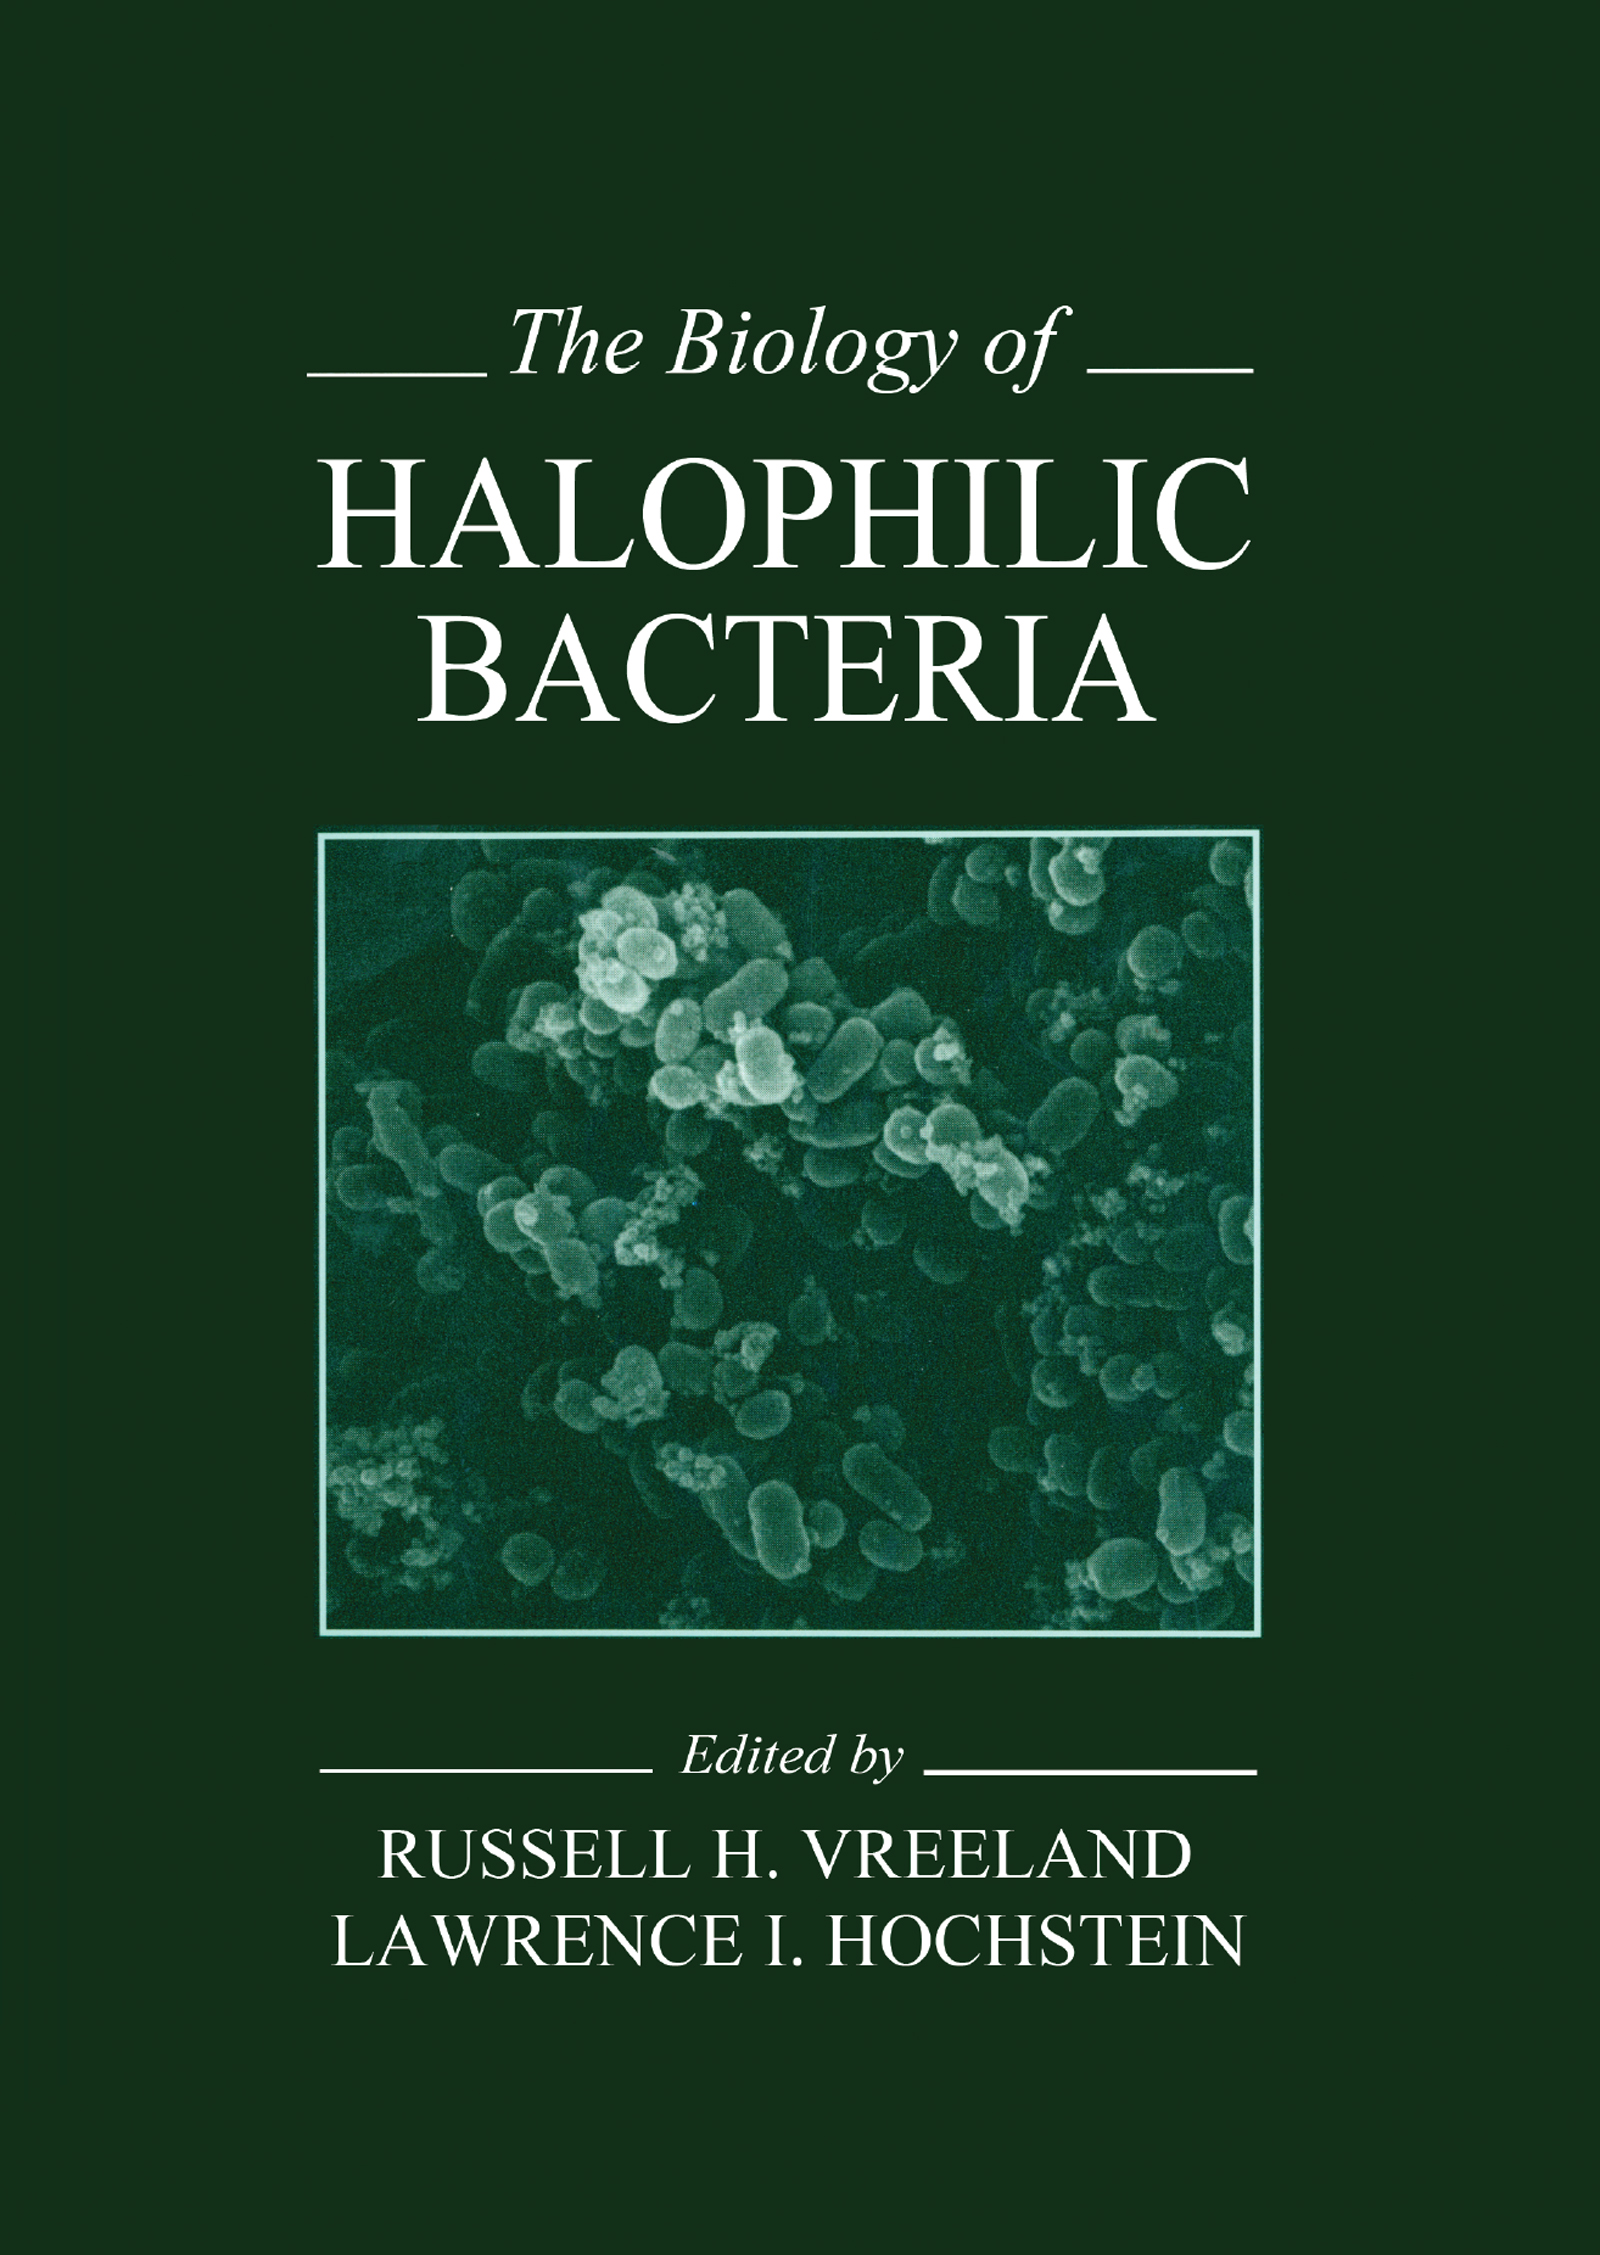 The Biology of HALOPHILIC BACTERIA